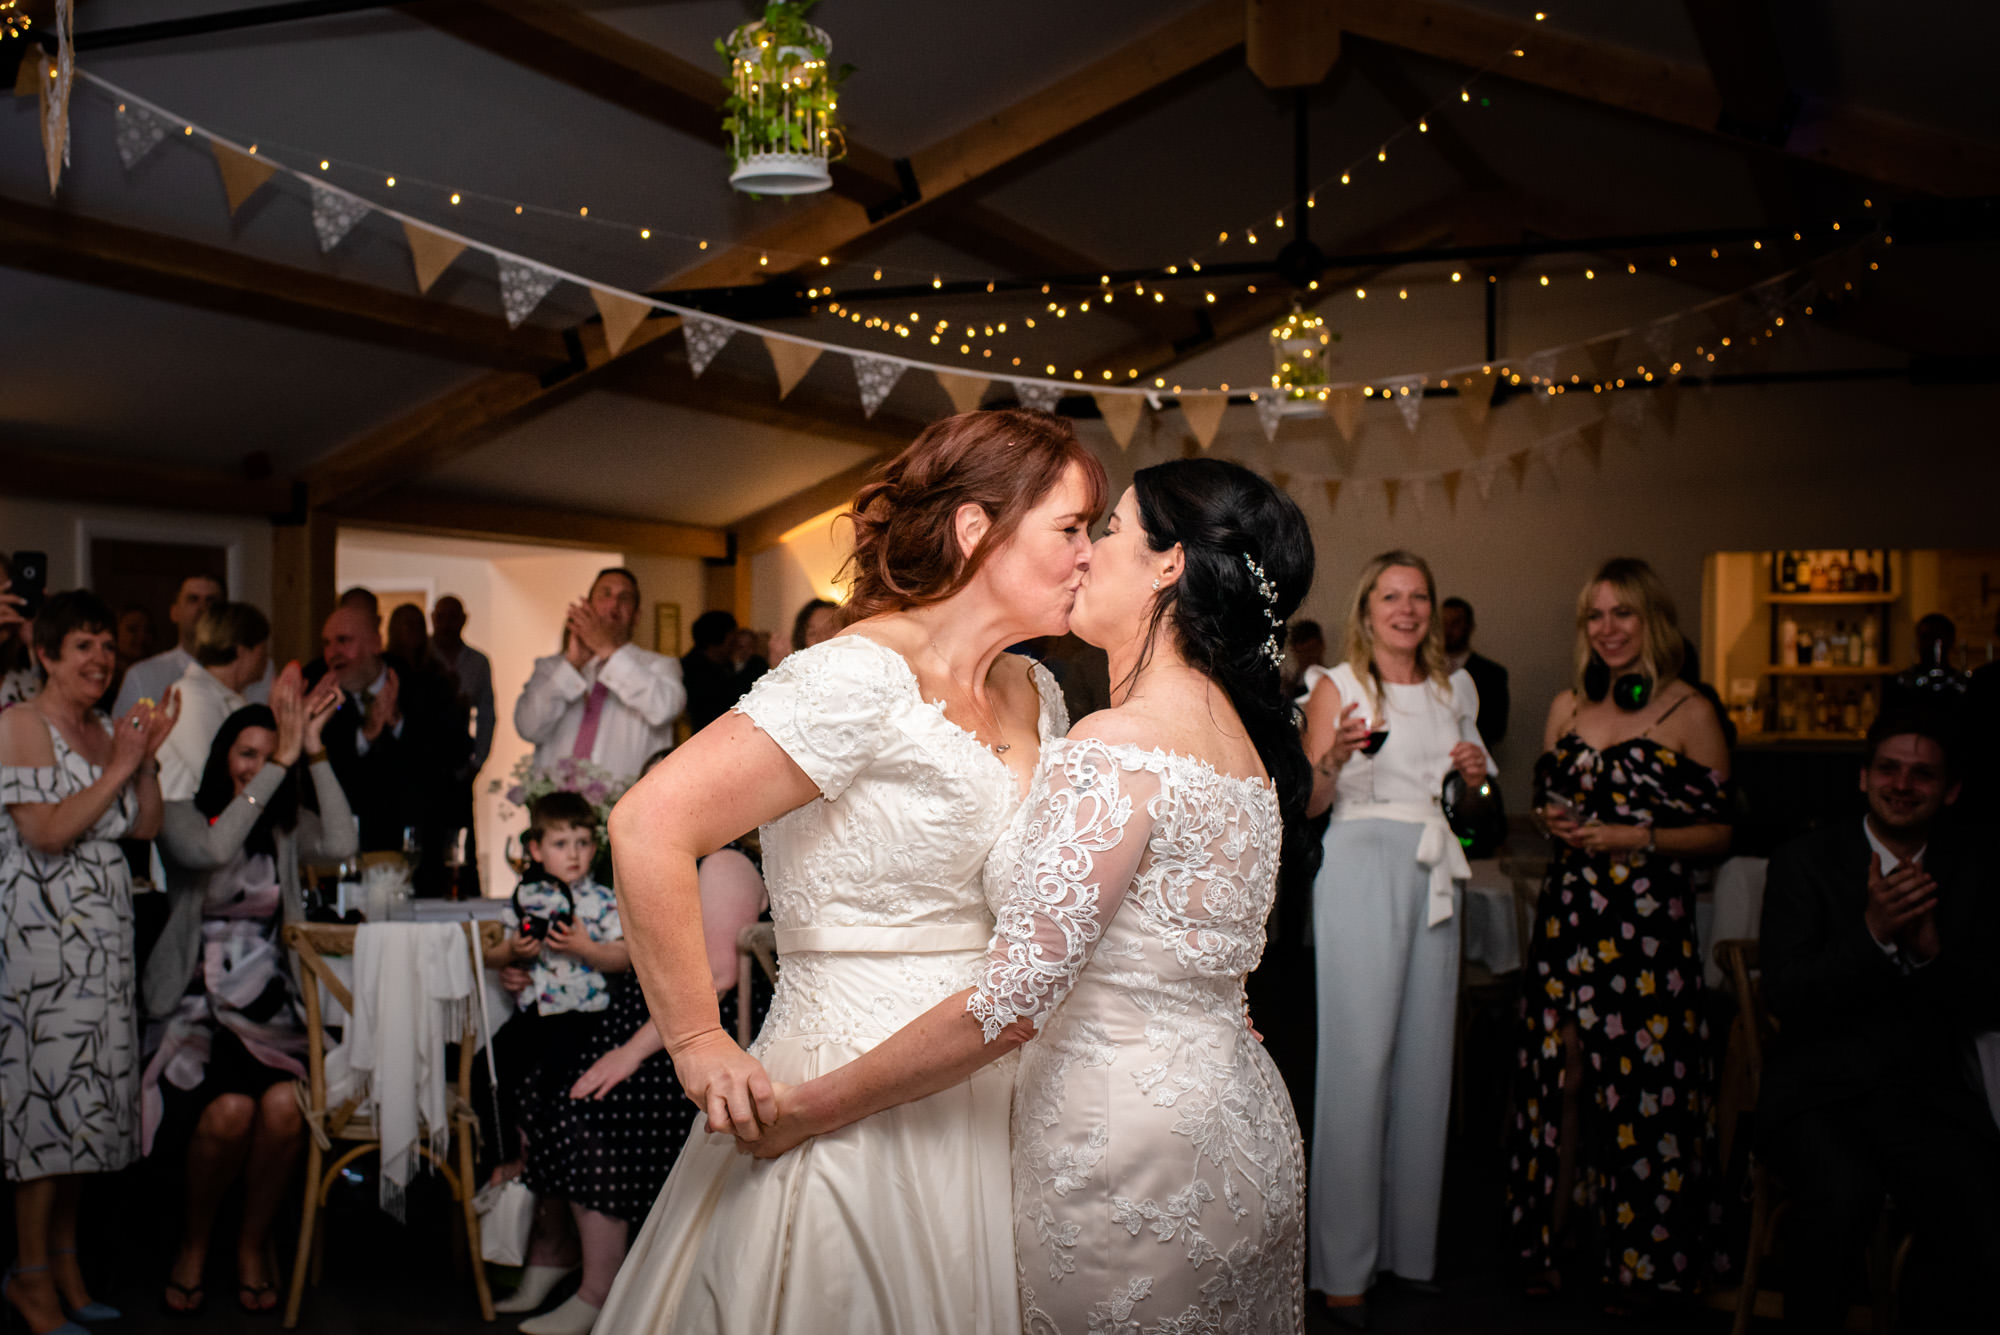 Brides kissing on the dancefloor